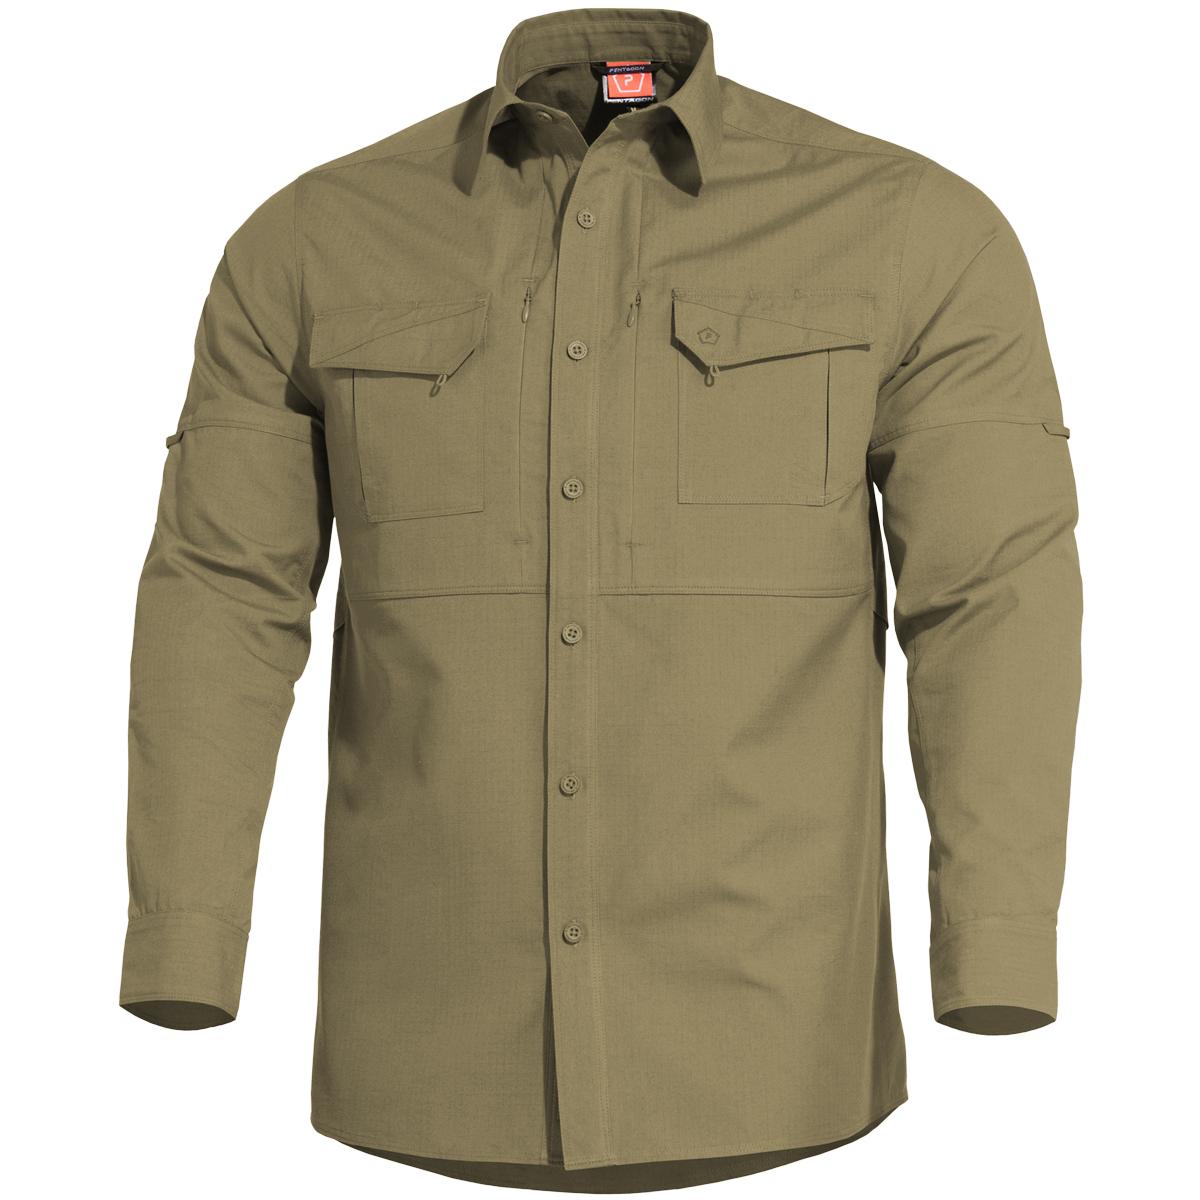 Pentagon Plato Tactical Shirt Mens Long Sleeve Work Special Ops Security Coyote